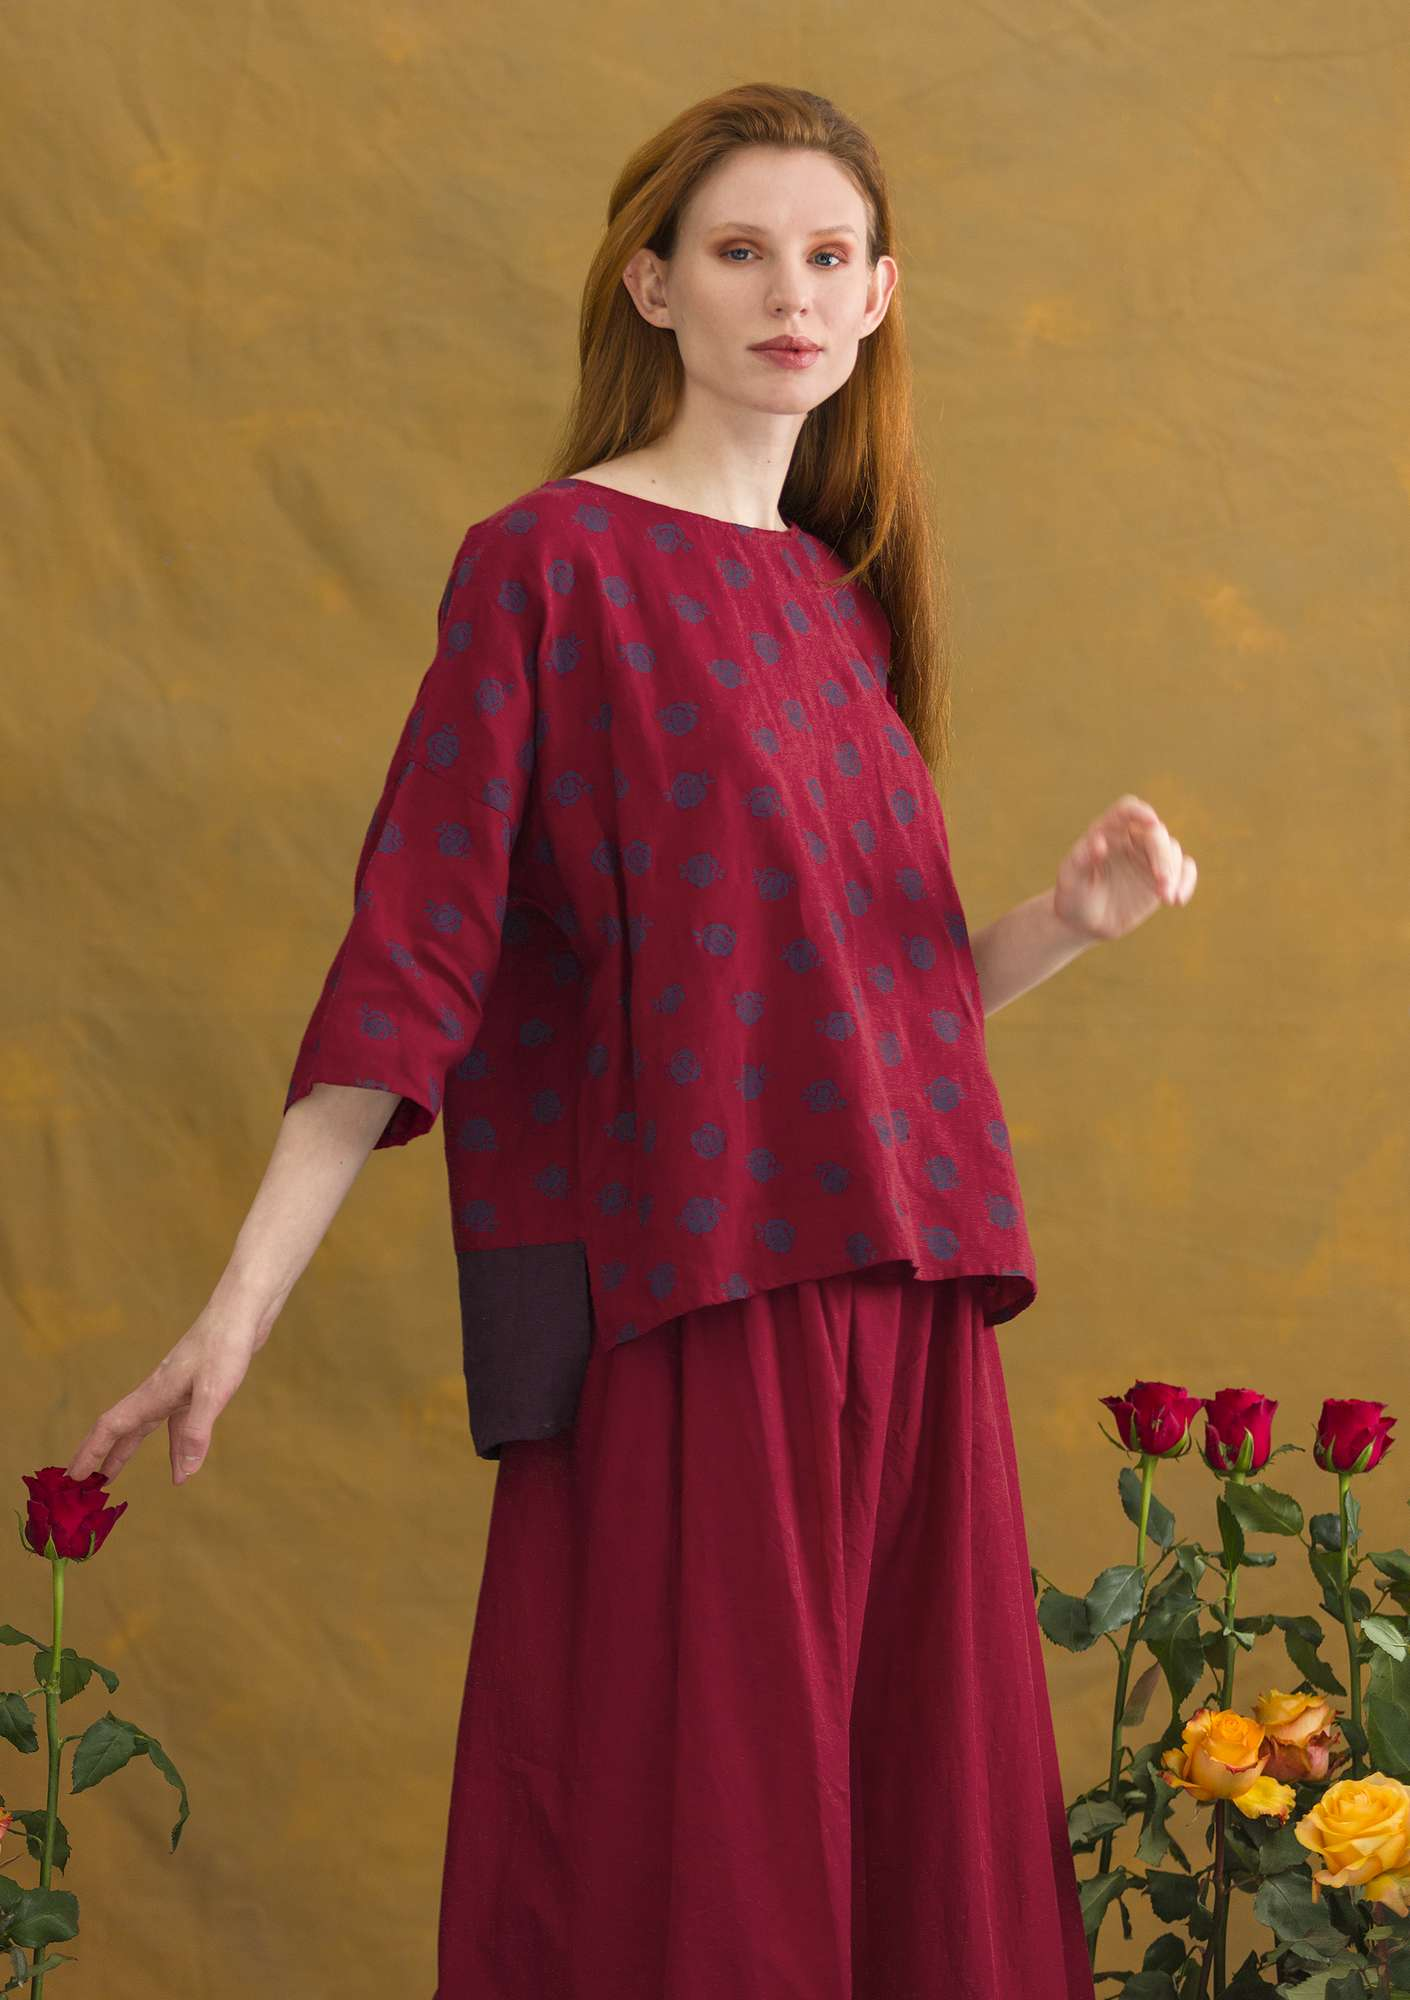 Blus Linros cranberry/patterned